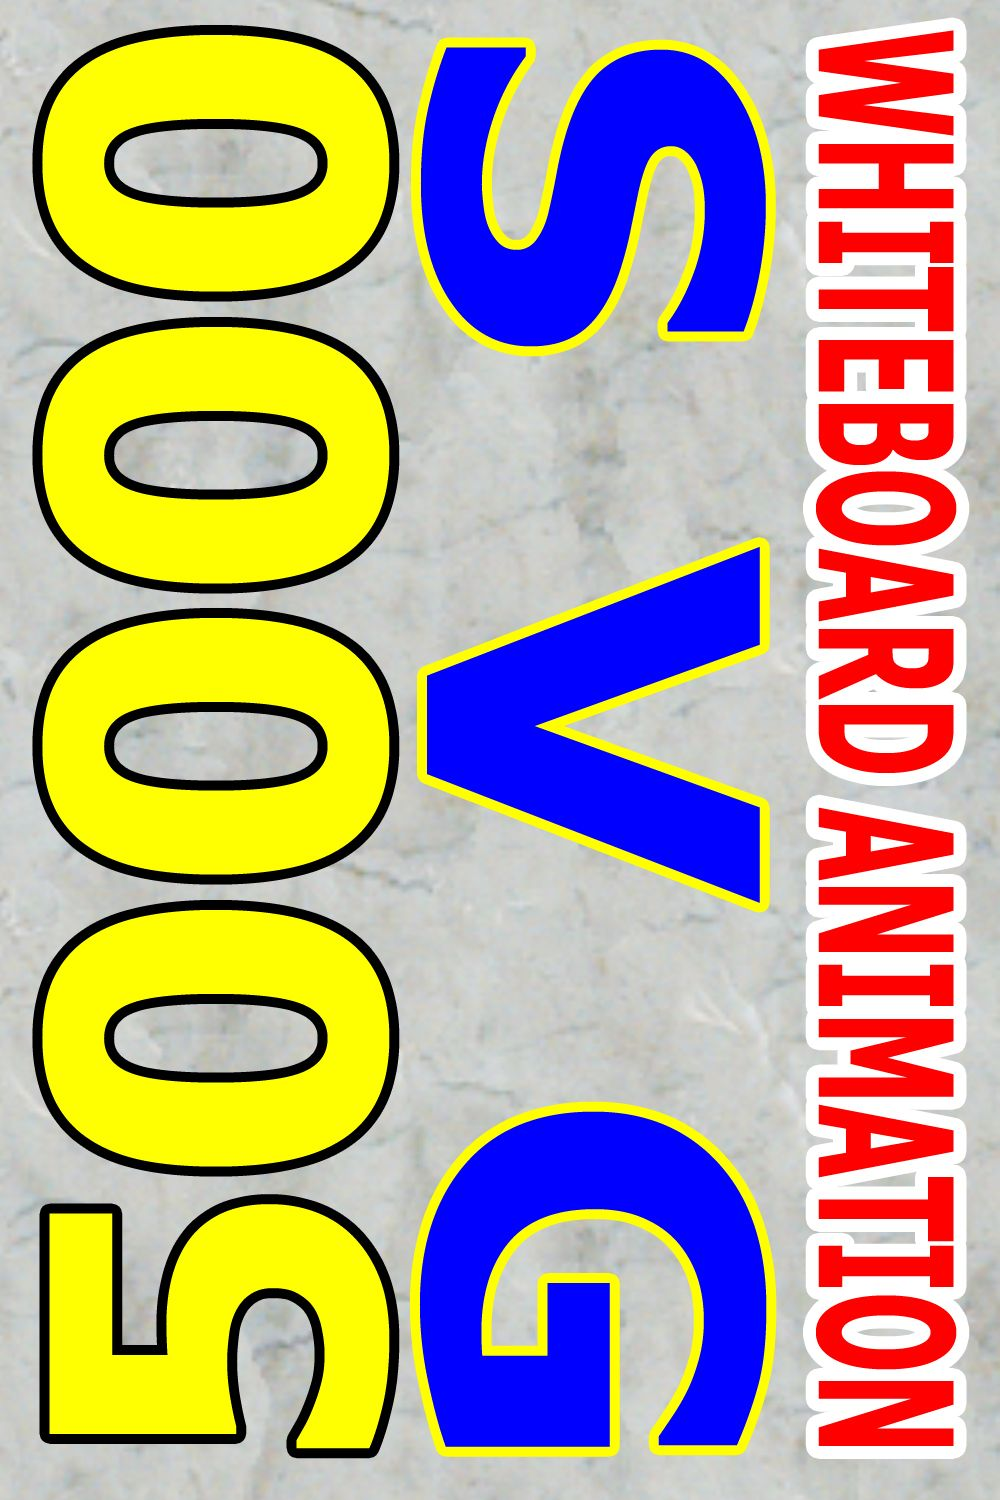 50000 SVG FOR WHITEBOARD ANIMATION FREE DOWNLOAD in 2020